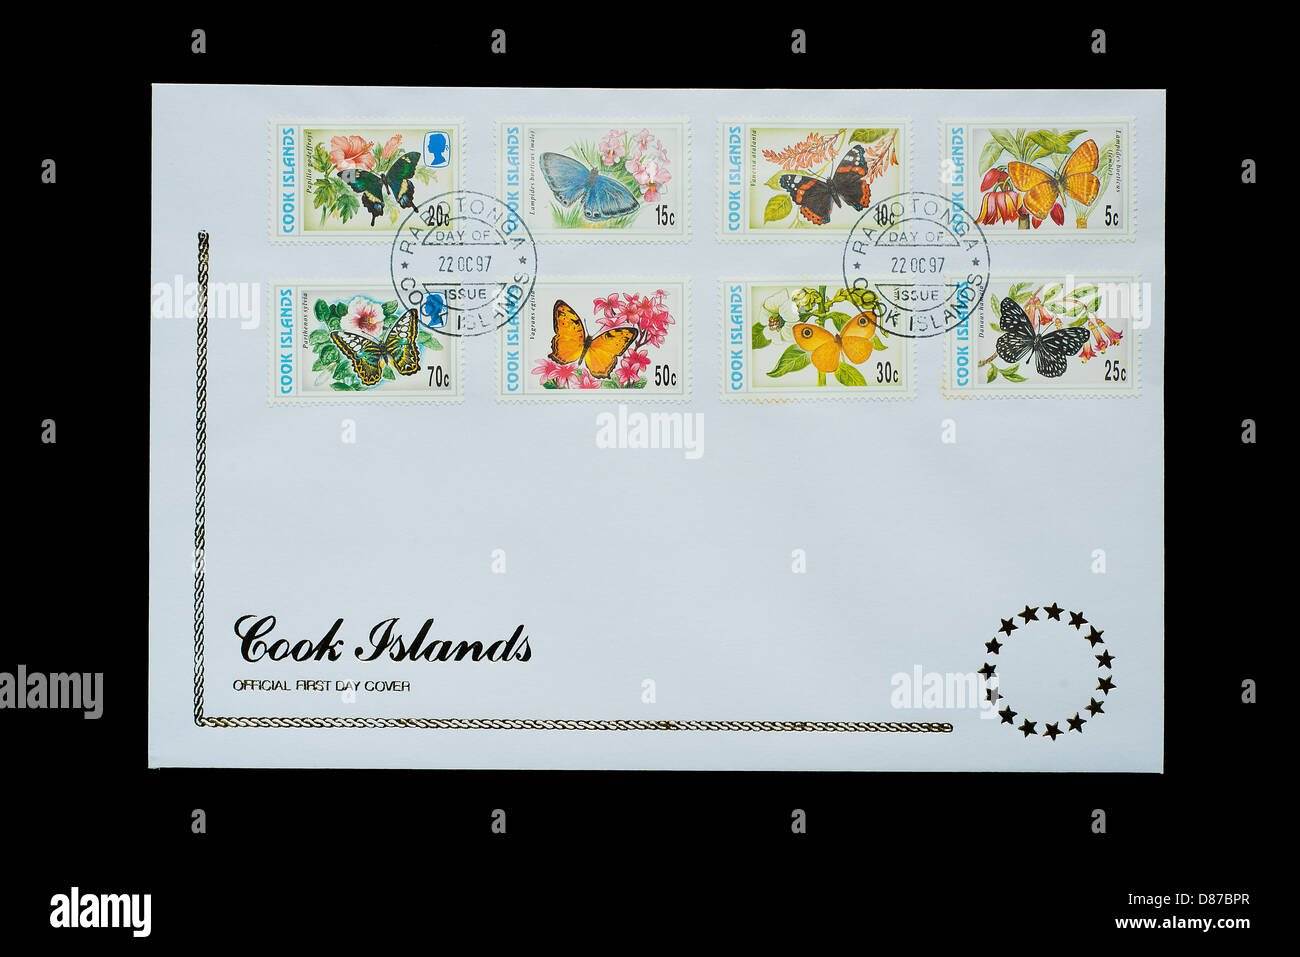 The official first day cover of stamps of Cook Islands - Stock Image